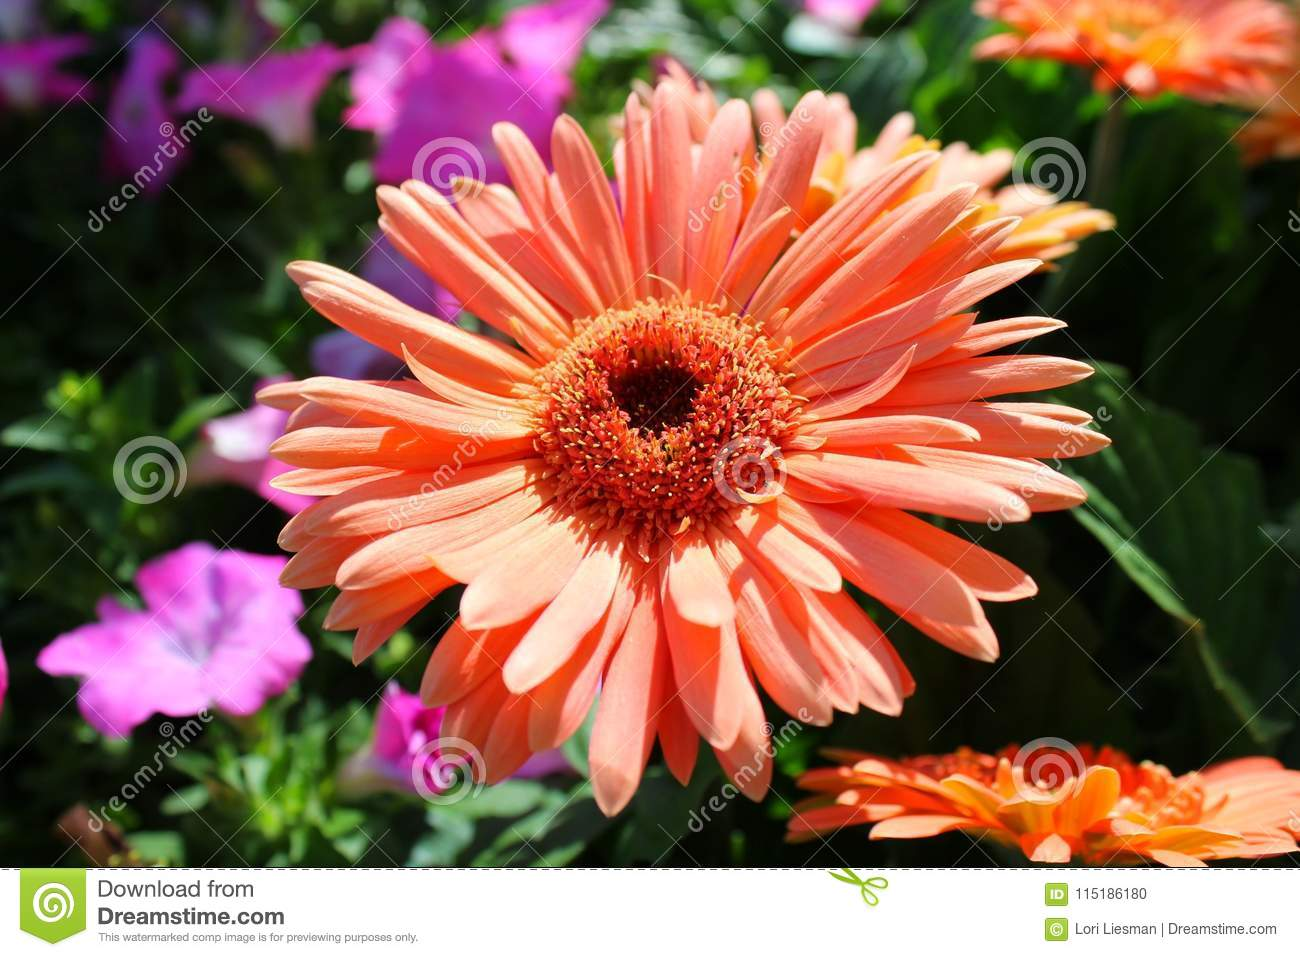 A large peach colored daisy looking flower in a garden stock photo beautiful peach colored flower that looks like a daisy in full bloom in a wildflower garden in the spring izmirmasajfo